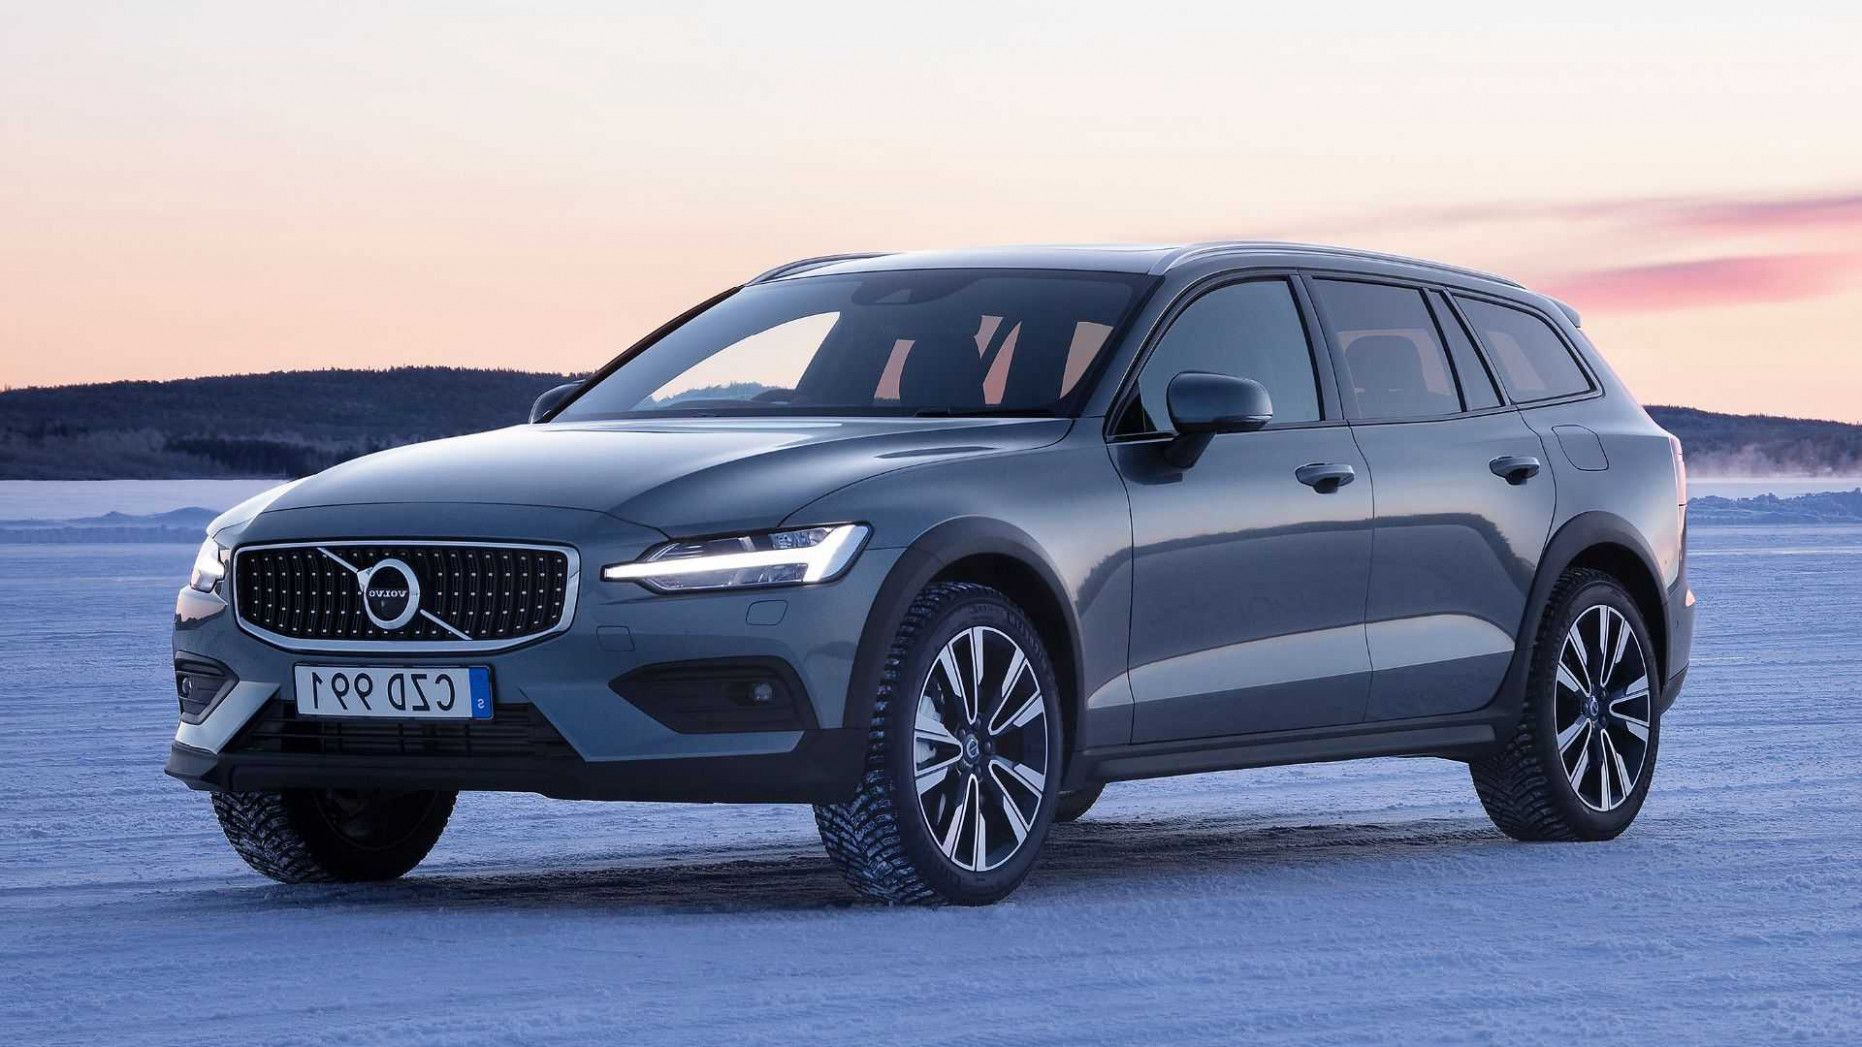 15 Lessons Ive Learned From Volvo Cross Country 2020 Volvo Concept Cars Volvo V60